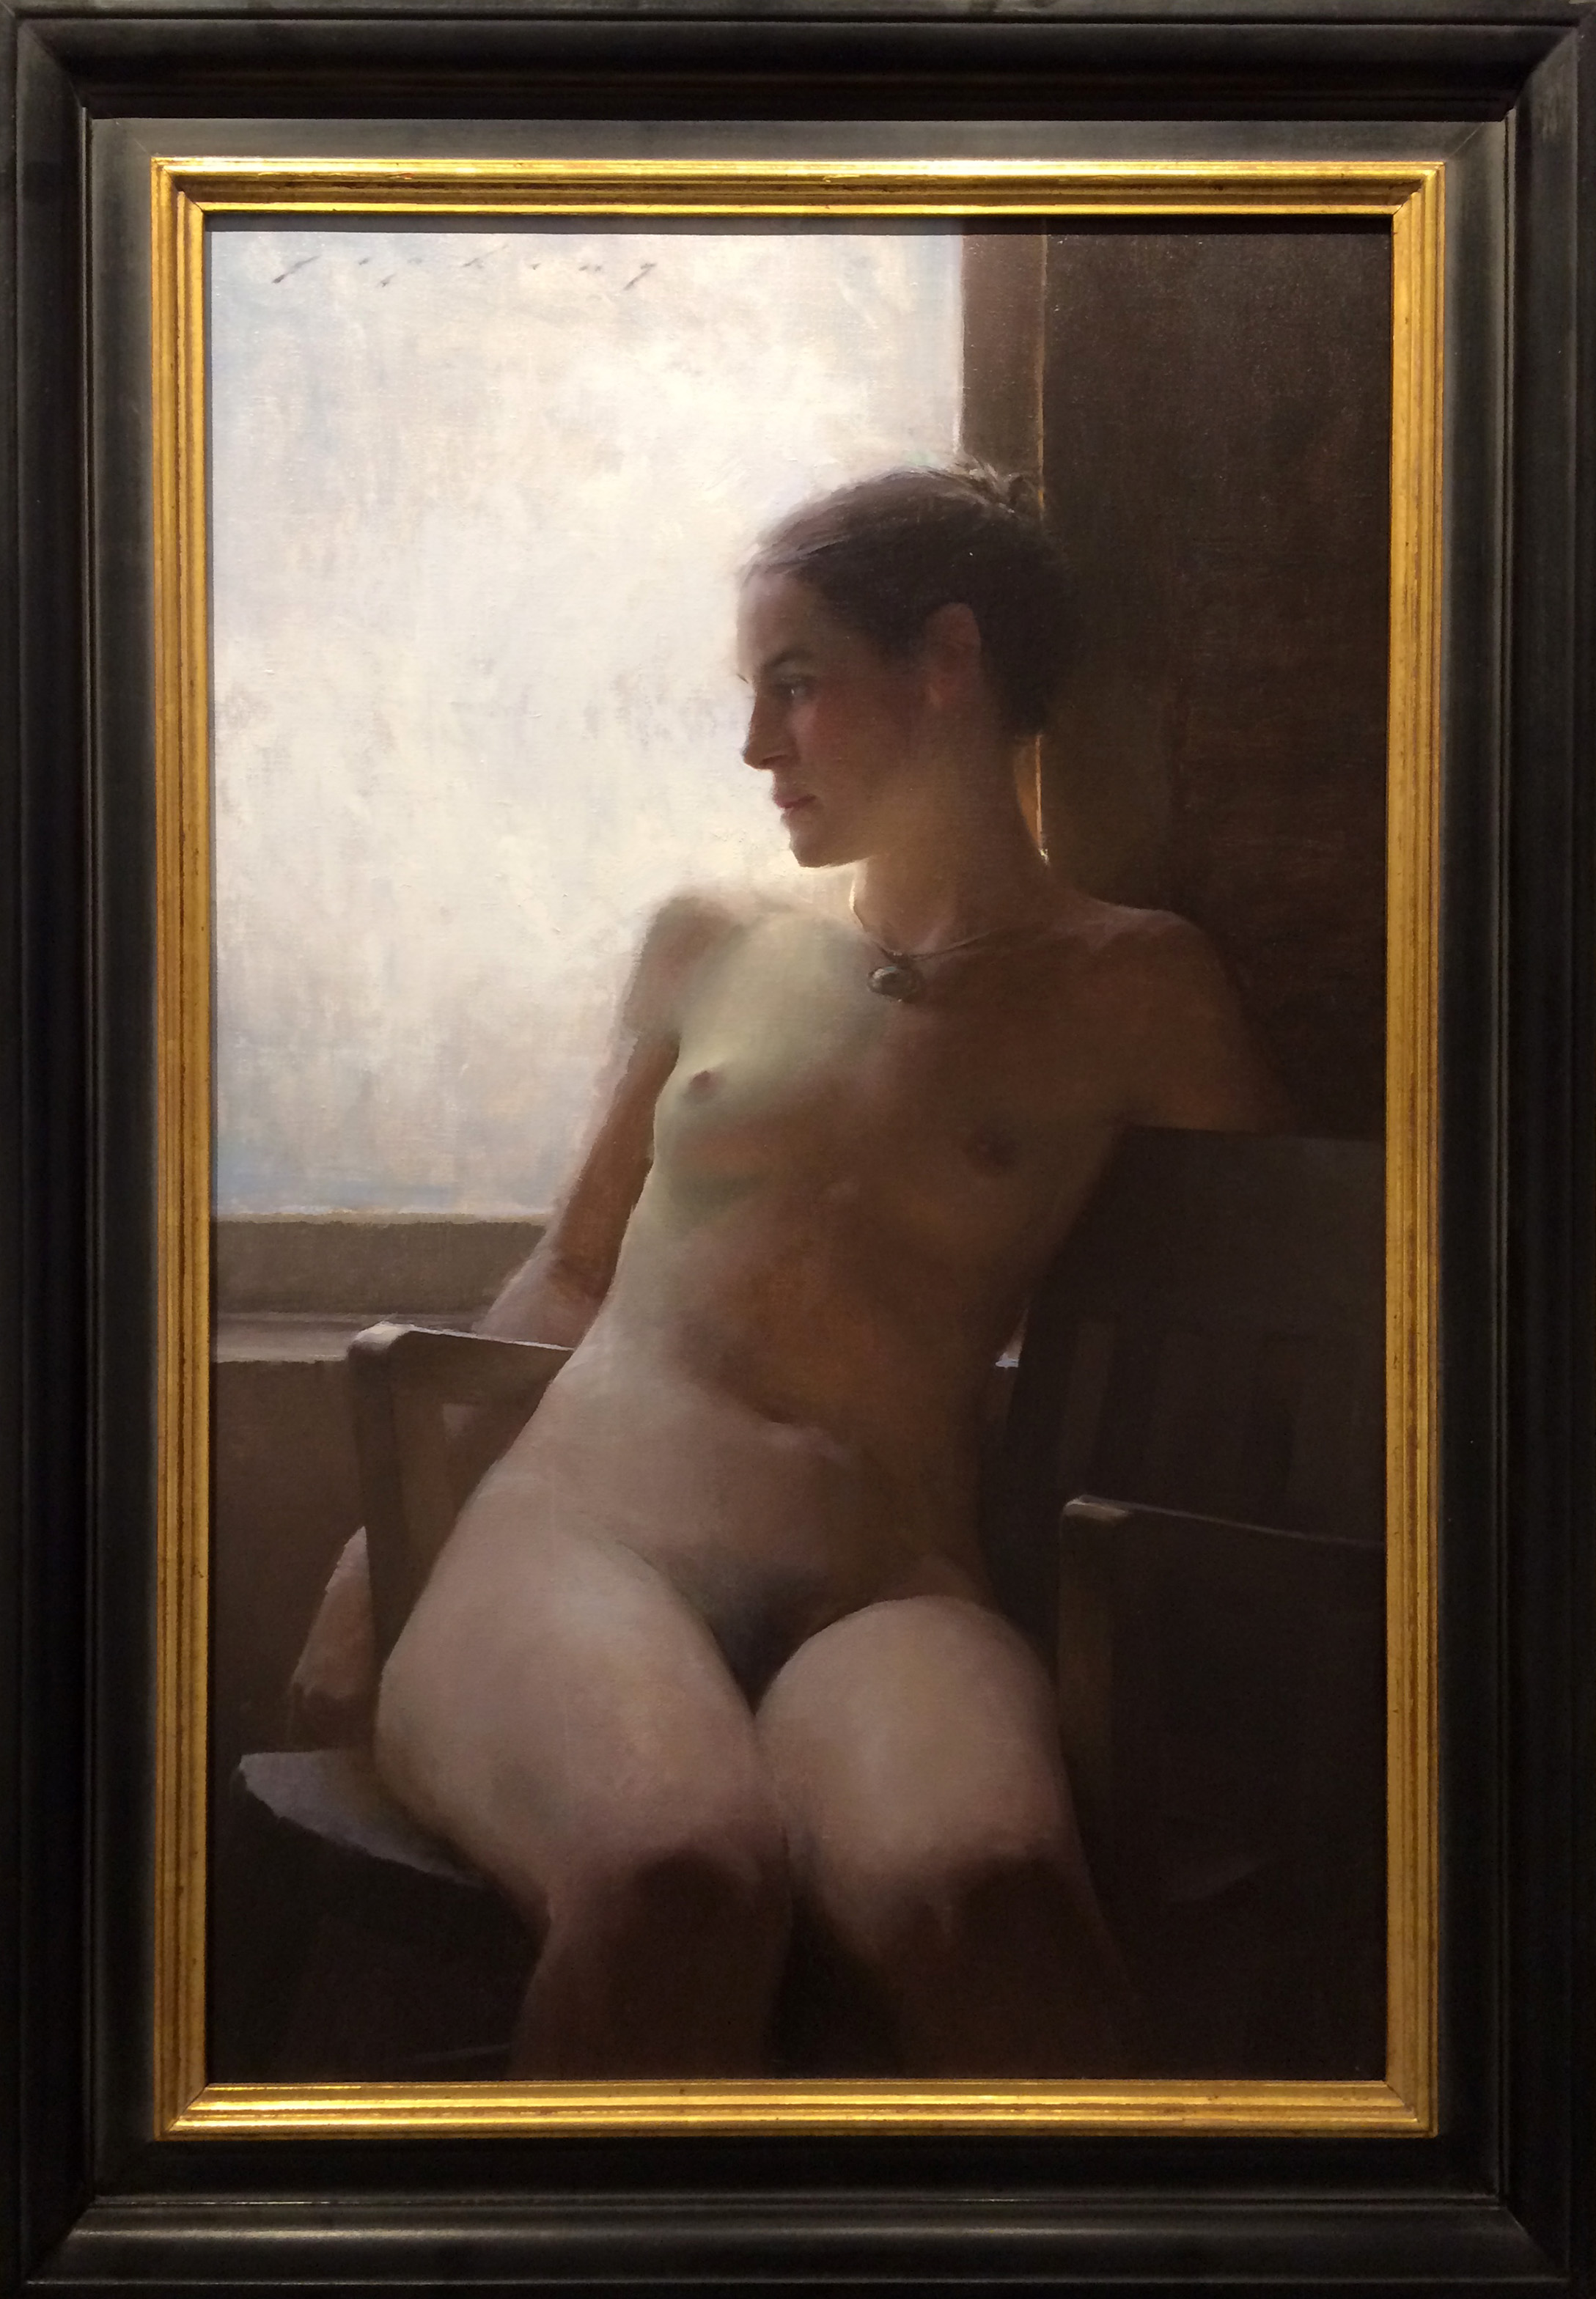 Nude by the Window